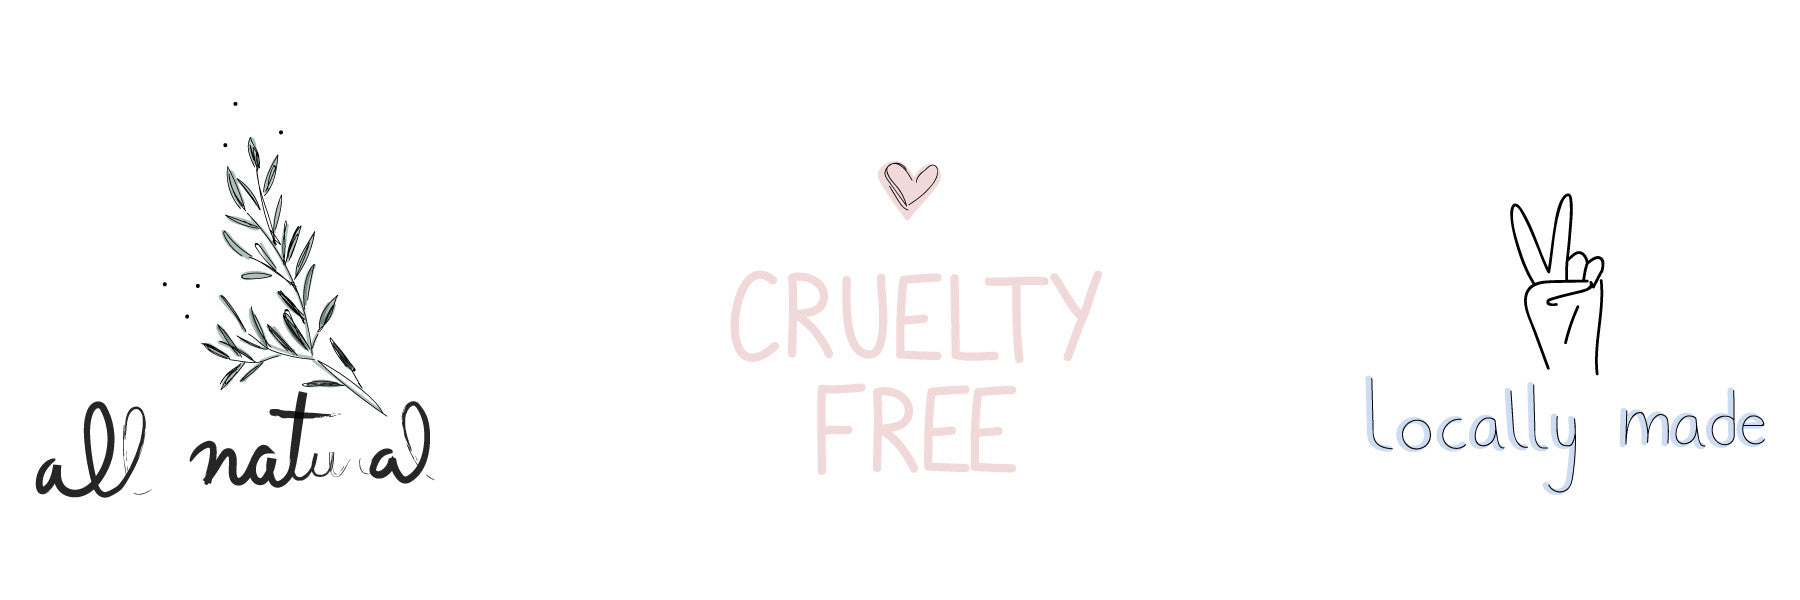 Cruelty free - Mimi and August